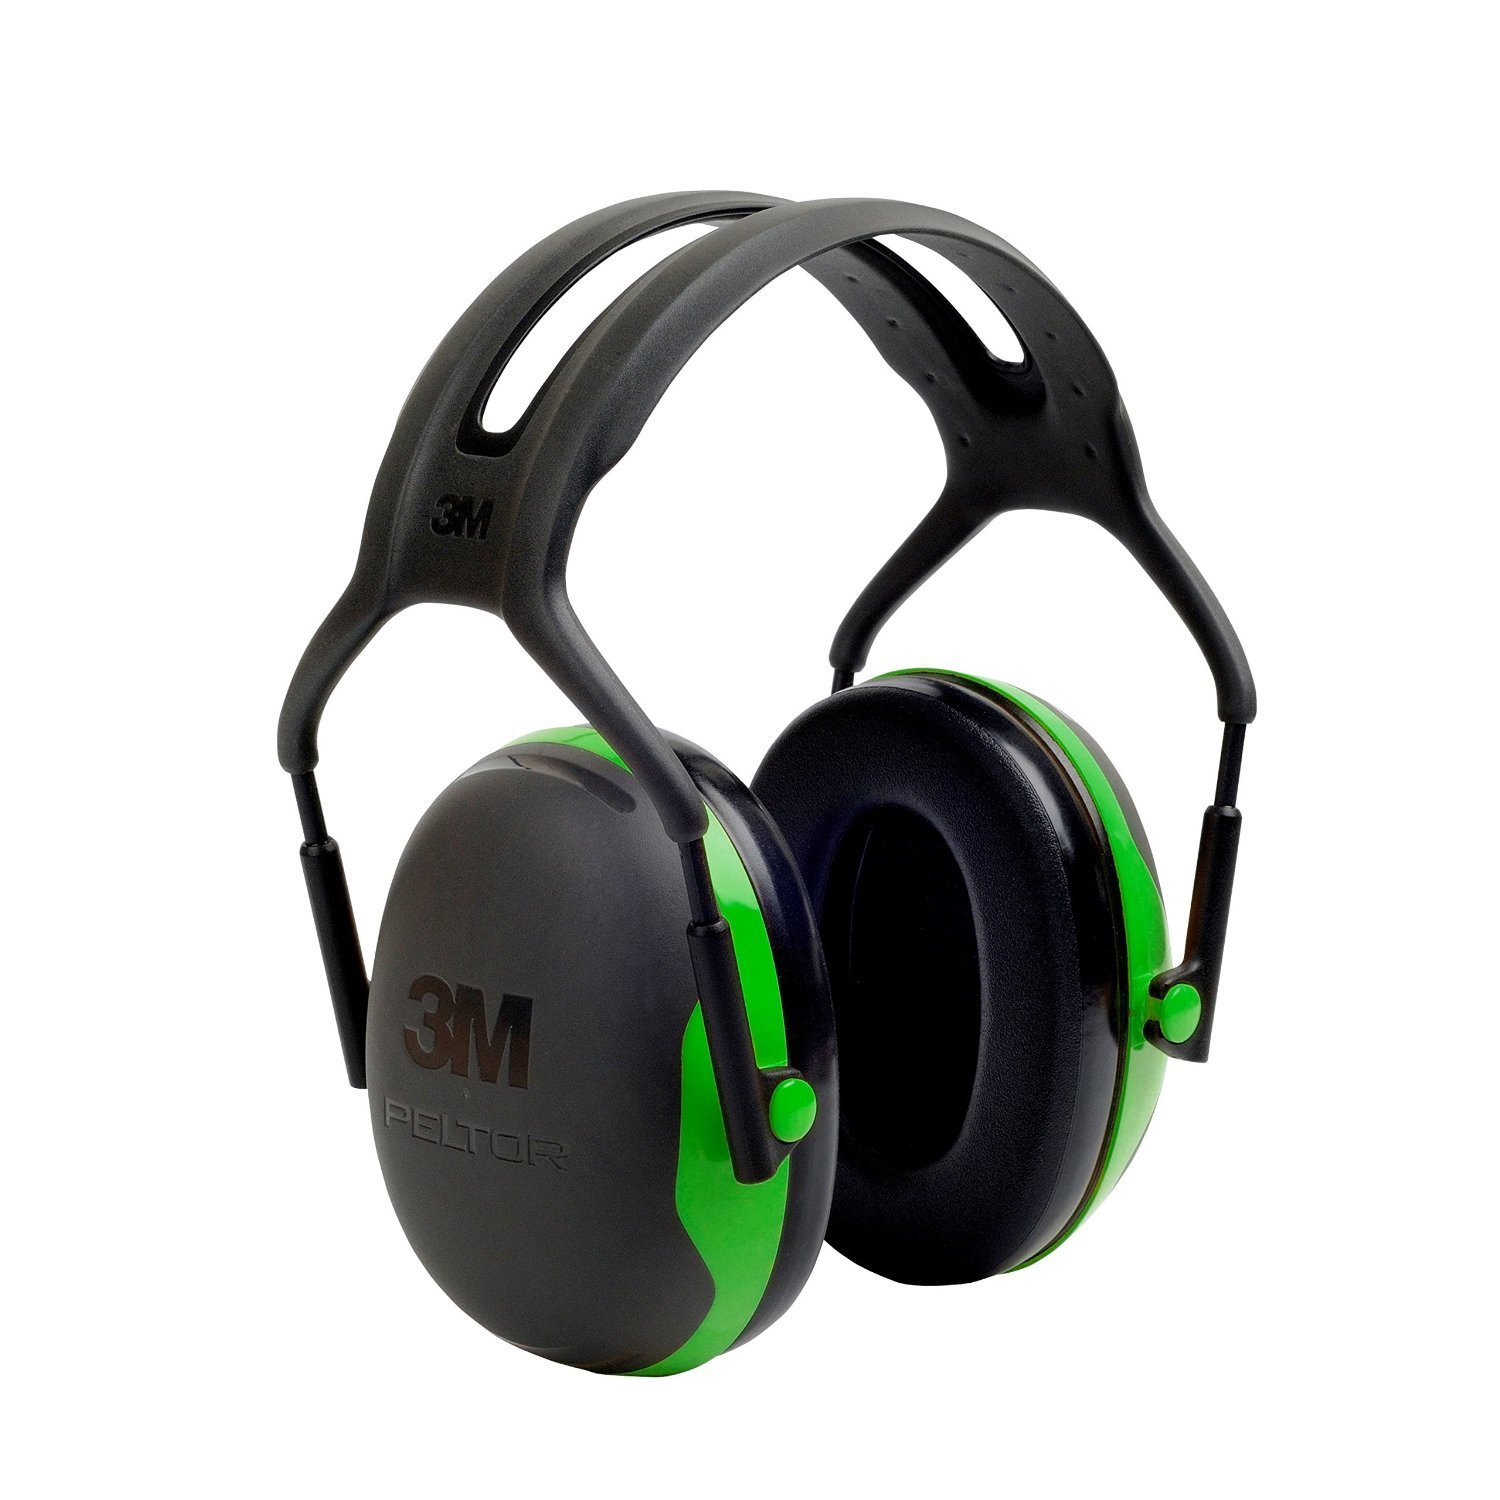 3M X1A Peltor Black and Green Model X1A/37270(AAD) Over-The-Head Hearing Conservation Earmuffs, English, 30.68 fl. oz, Plastic, 5.7'' x 4.5'' x 8.2''